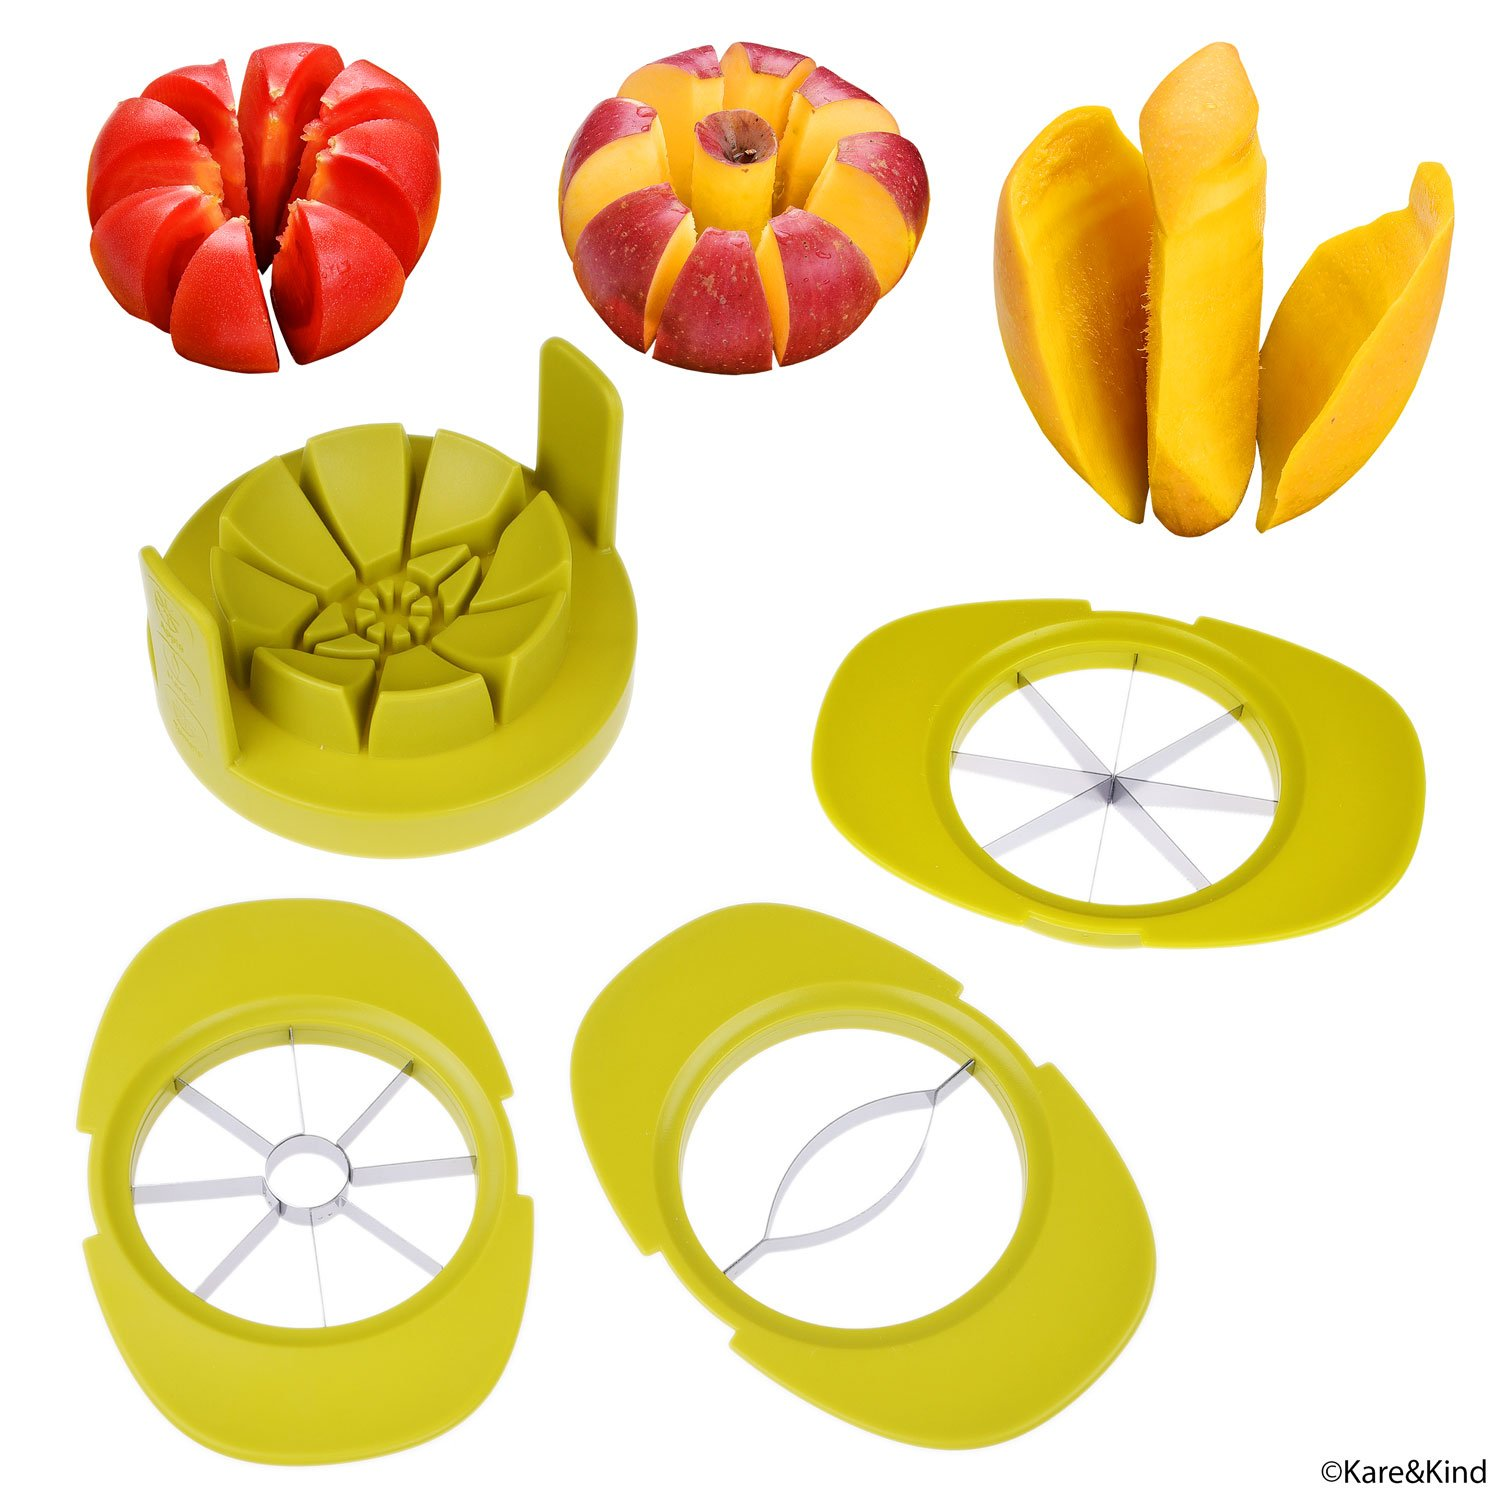 Apple/Tomato/Mango Cutters - Set of 3 - Sturdy Base keeps Fruit/Vegetable in Place - Also keeps Cutters Organized - Razor Sharp Stainless Steel Saw Blades - Quick - Easy Kare & Kind